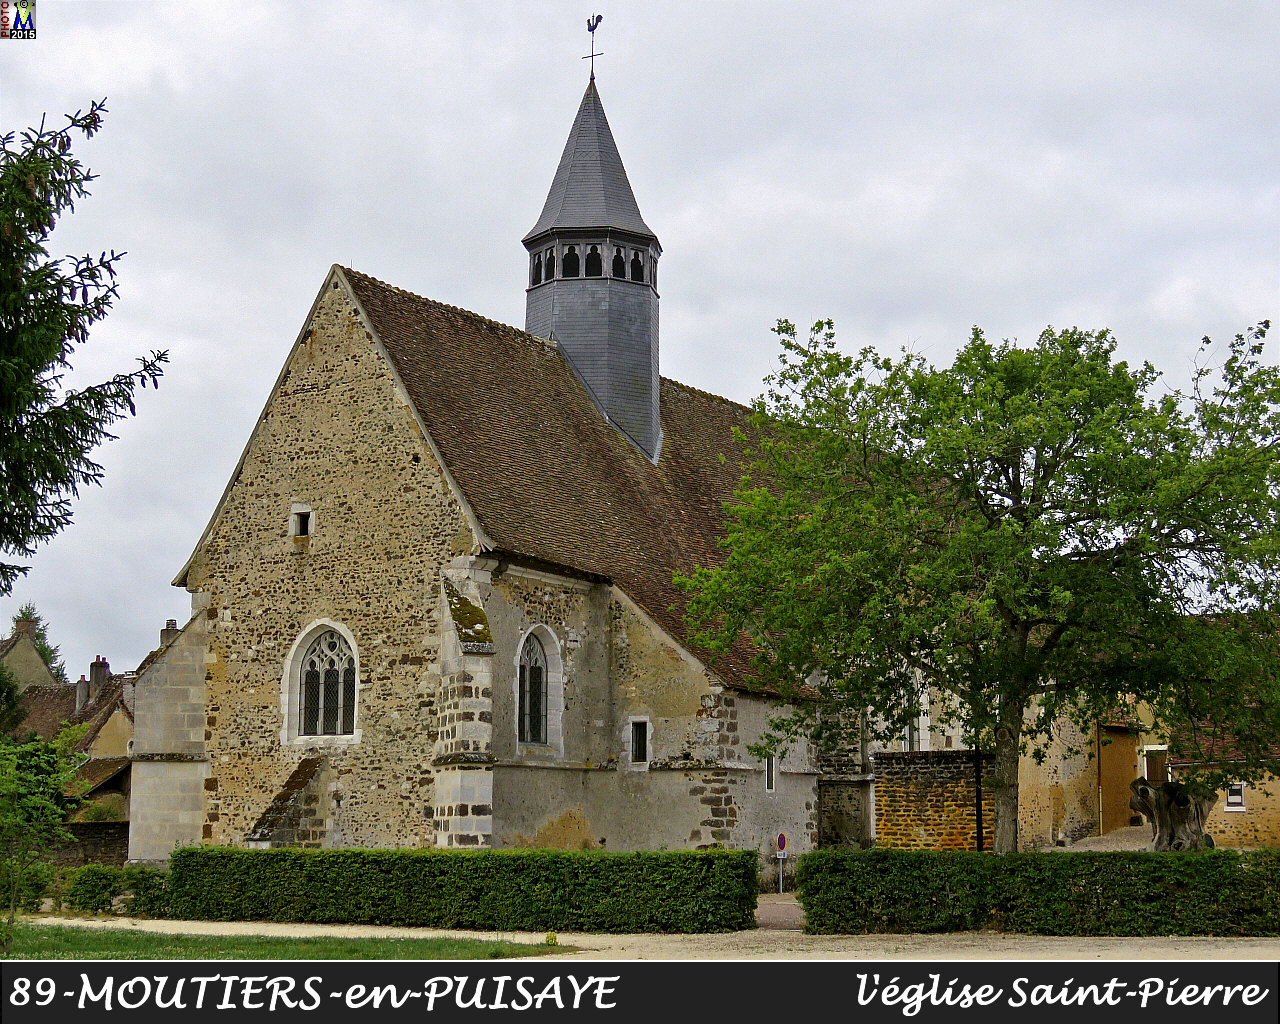 89MOUTIERS-PUISAYE_eglise_104.jpg